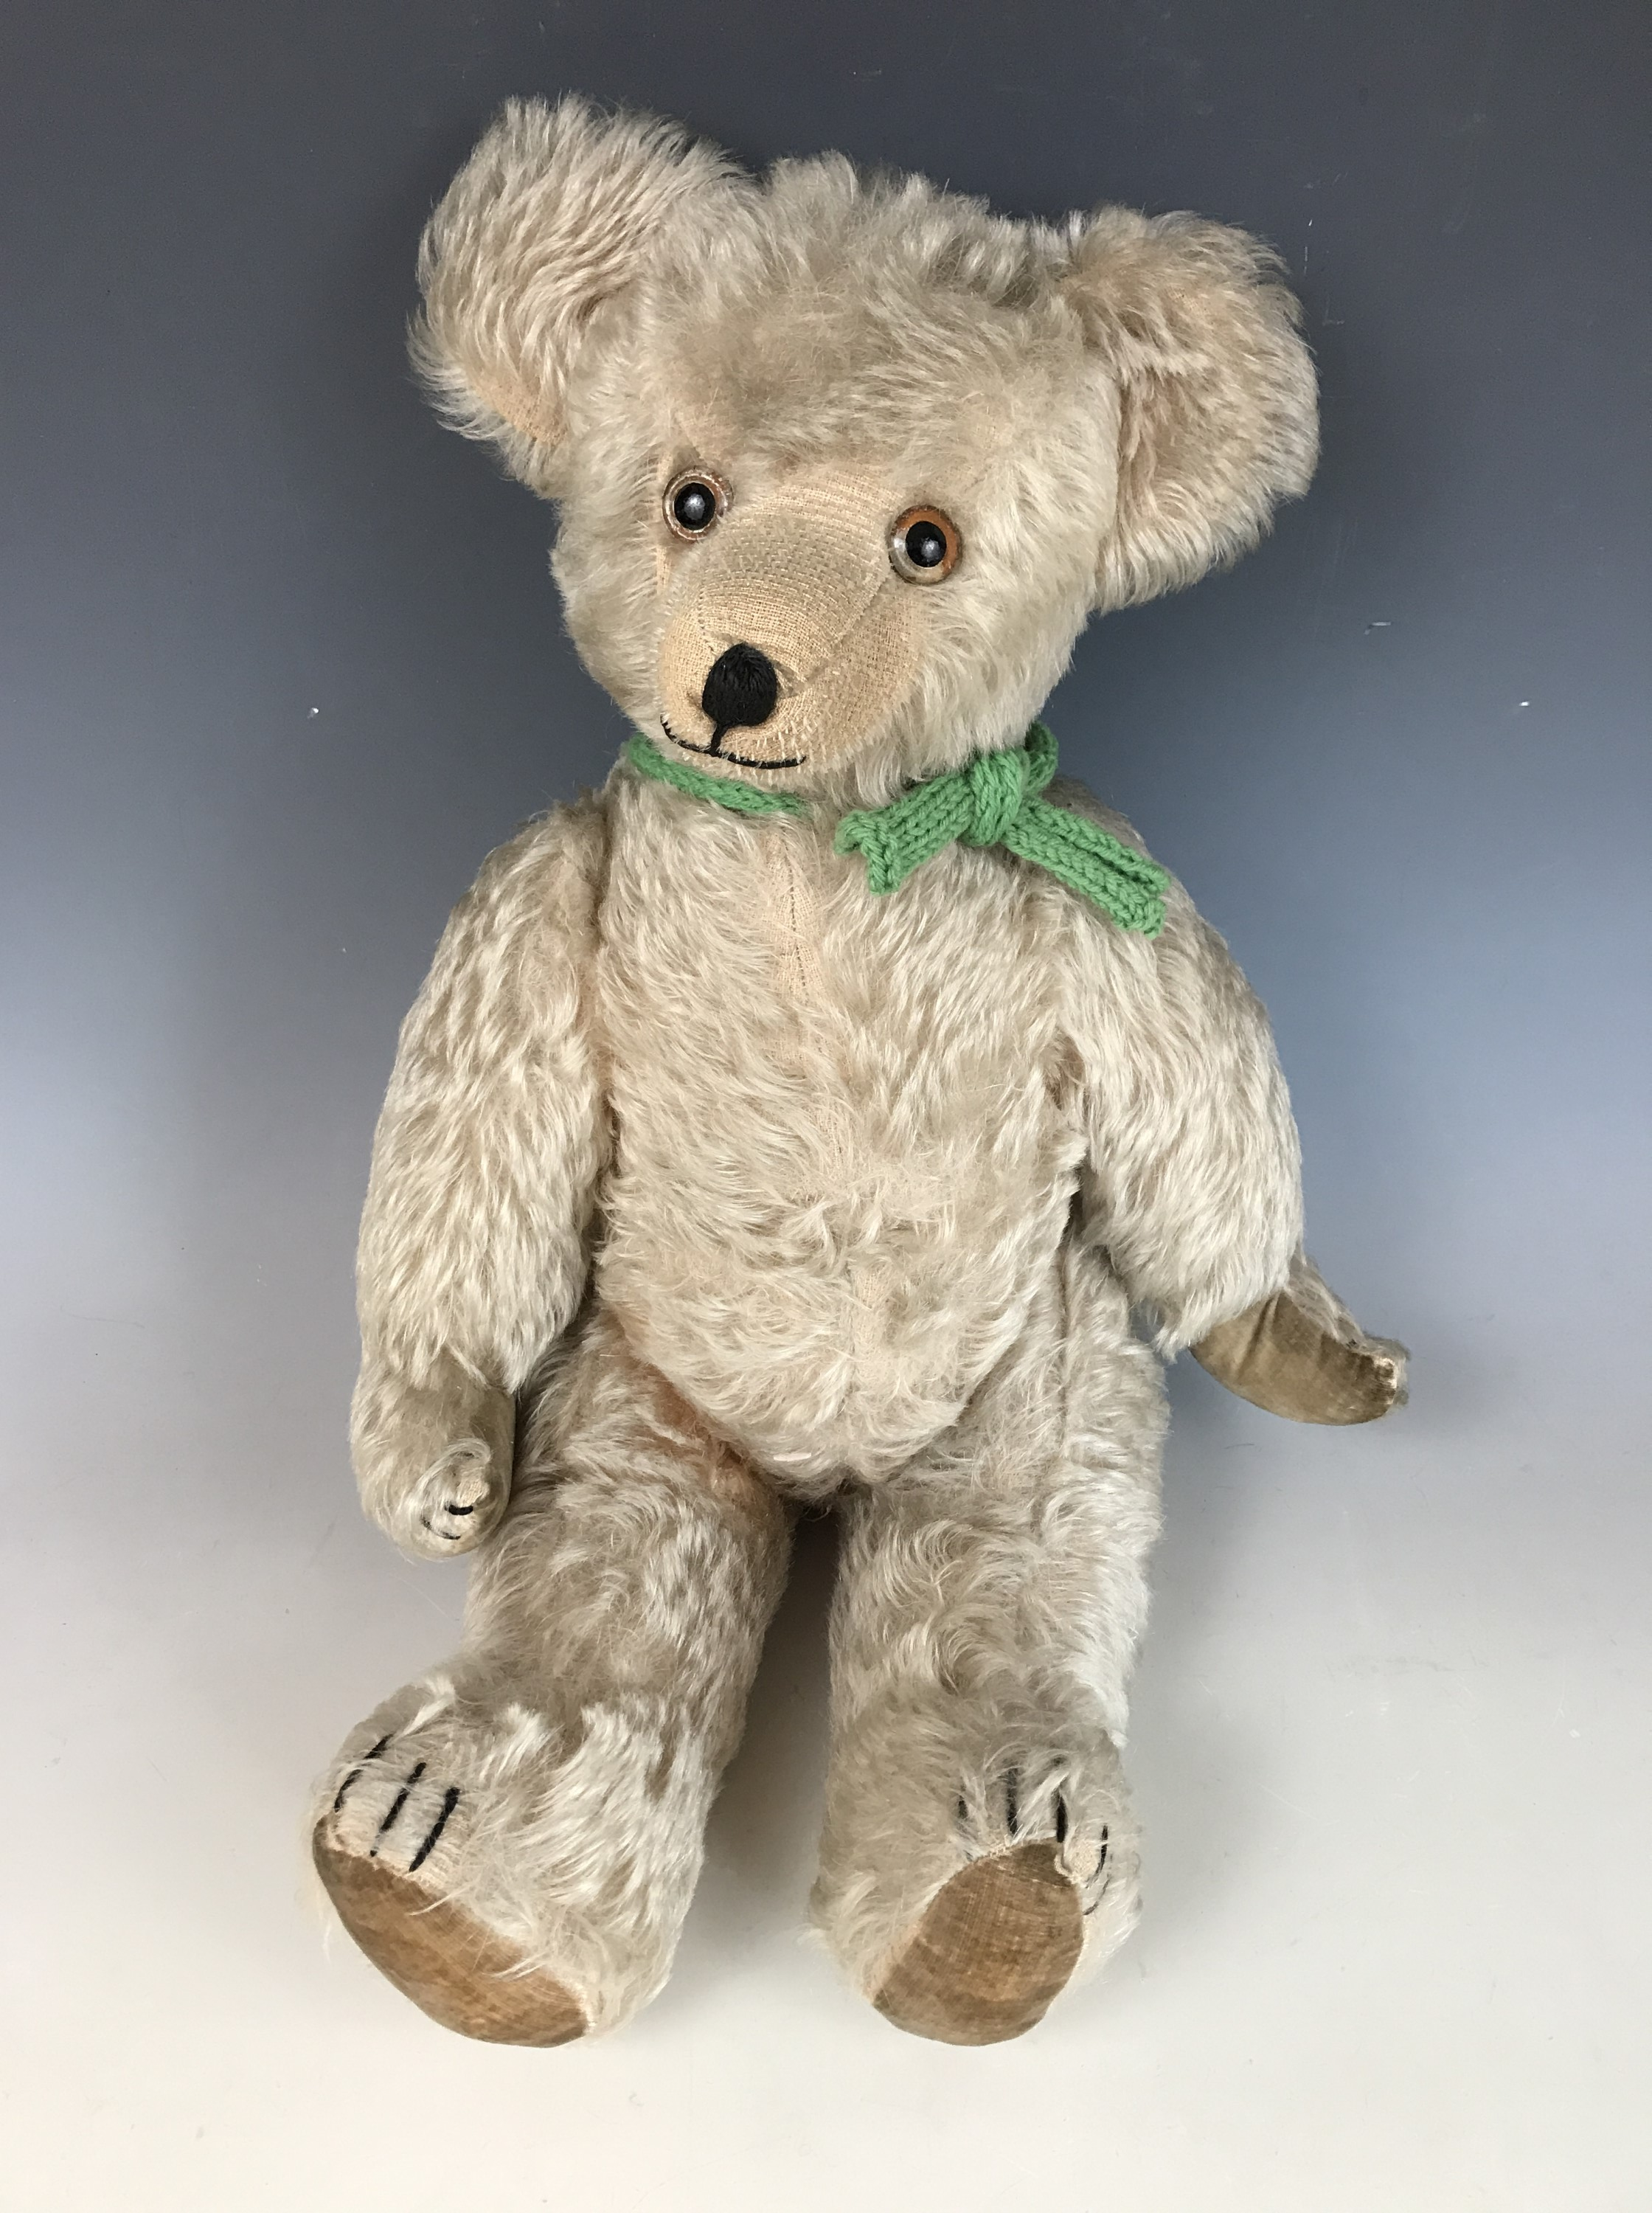 Lot 43 - A 1930s Teddy bear, with wood wool stuffing, articulated limbs, blonde mohair, velvet lined pads and